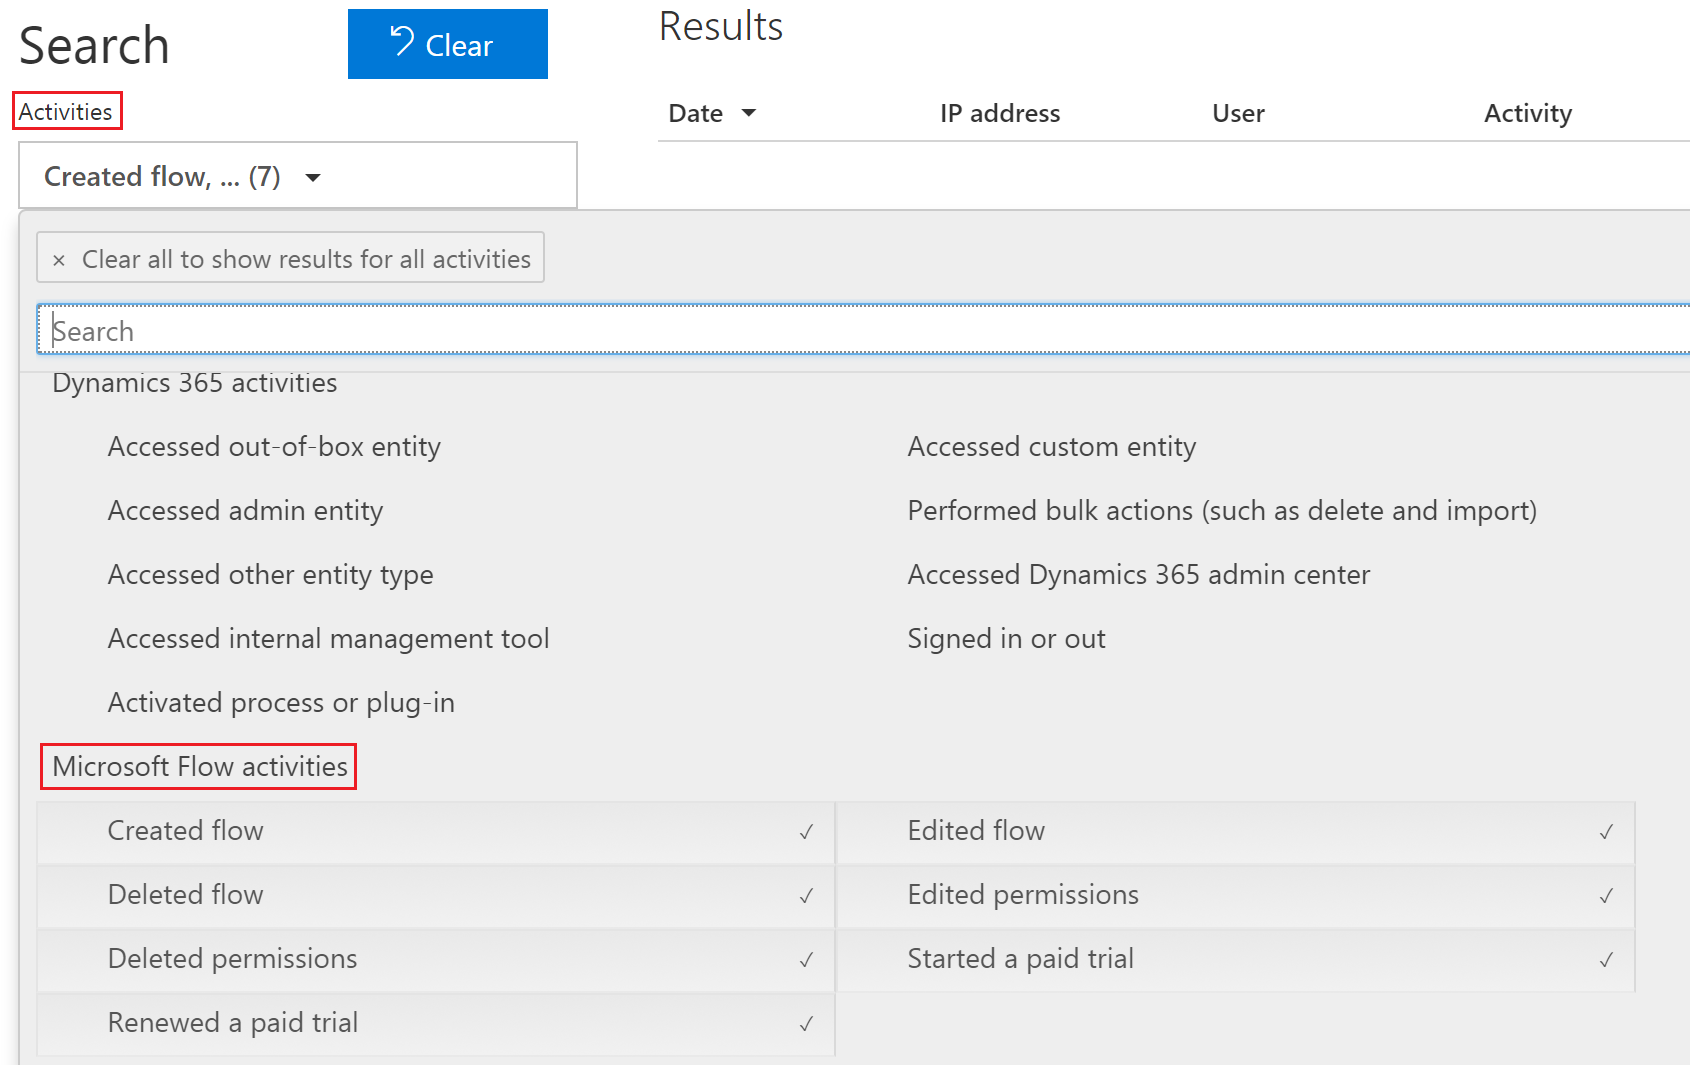 Microsoft Flow audit events now available in Office 365 Security & Compliance Center